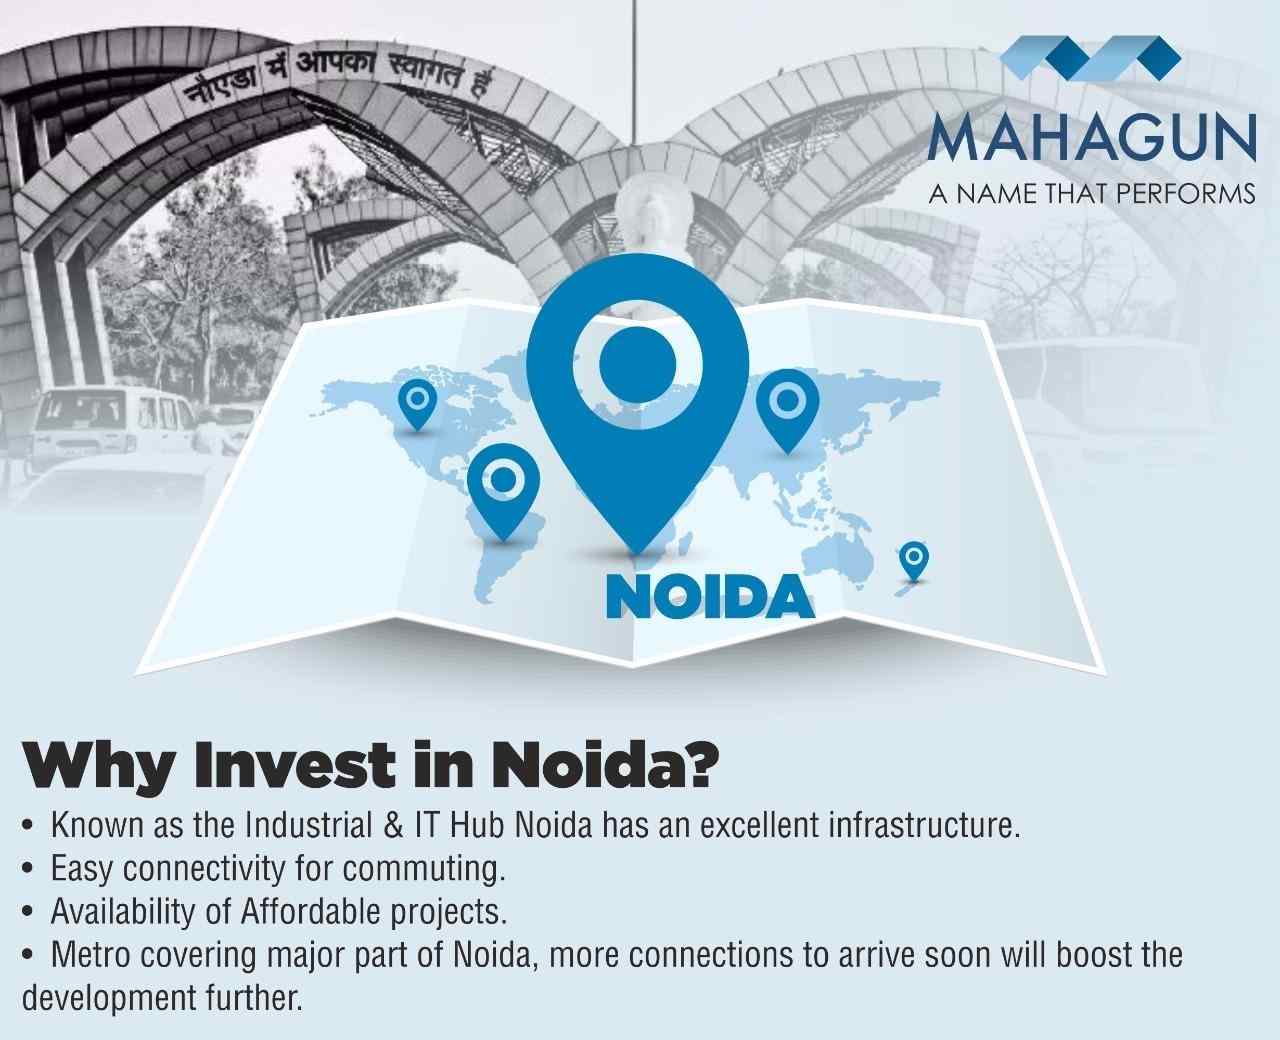 Why invest in Noida